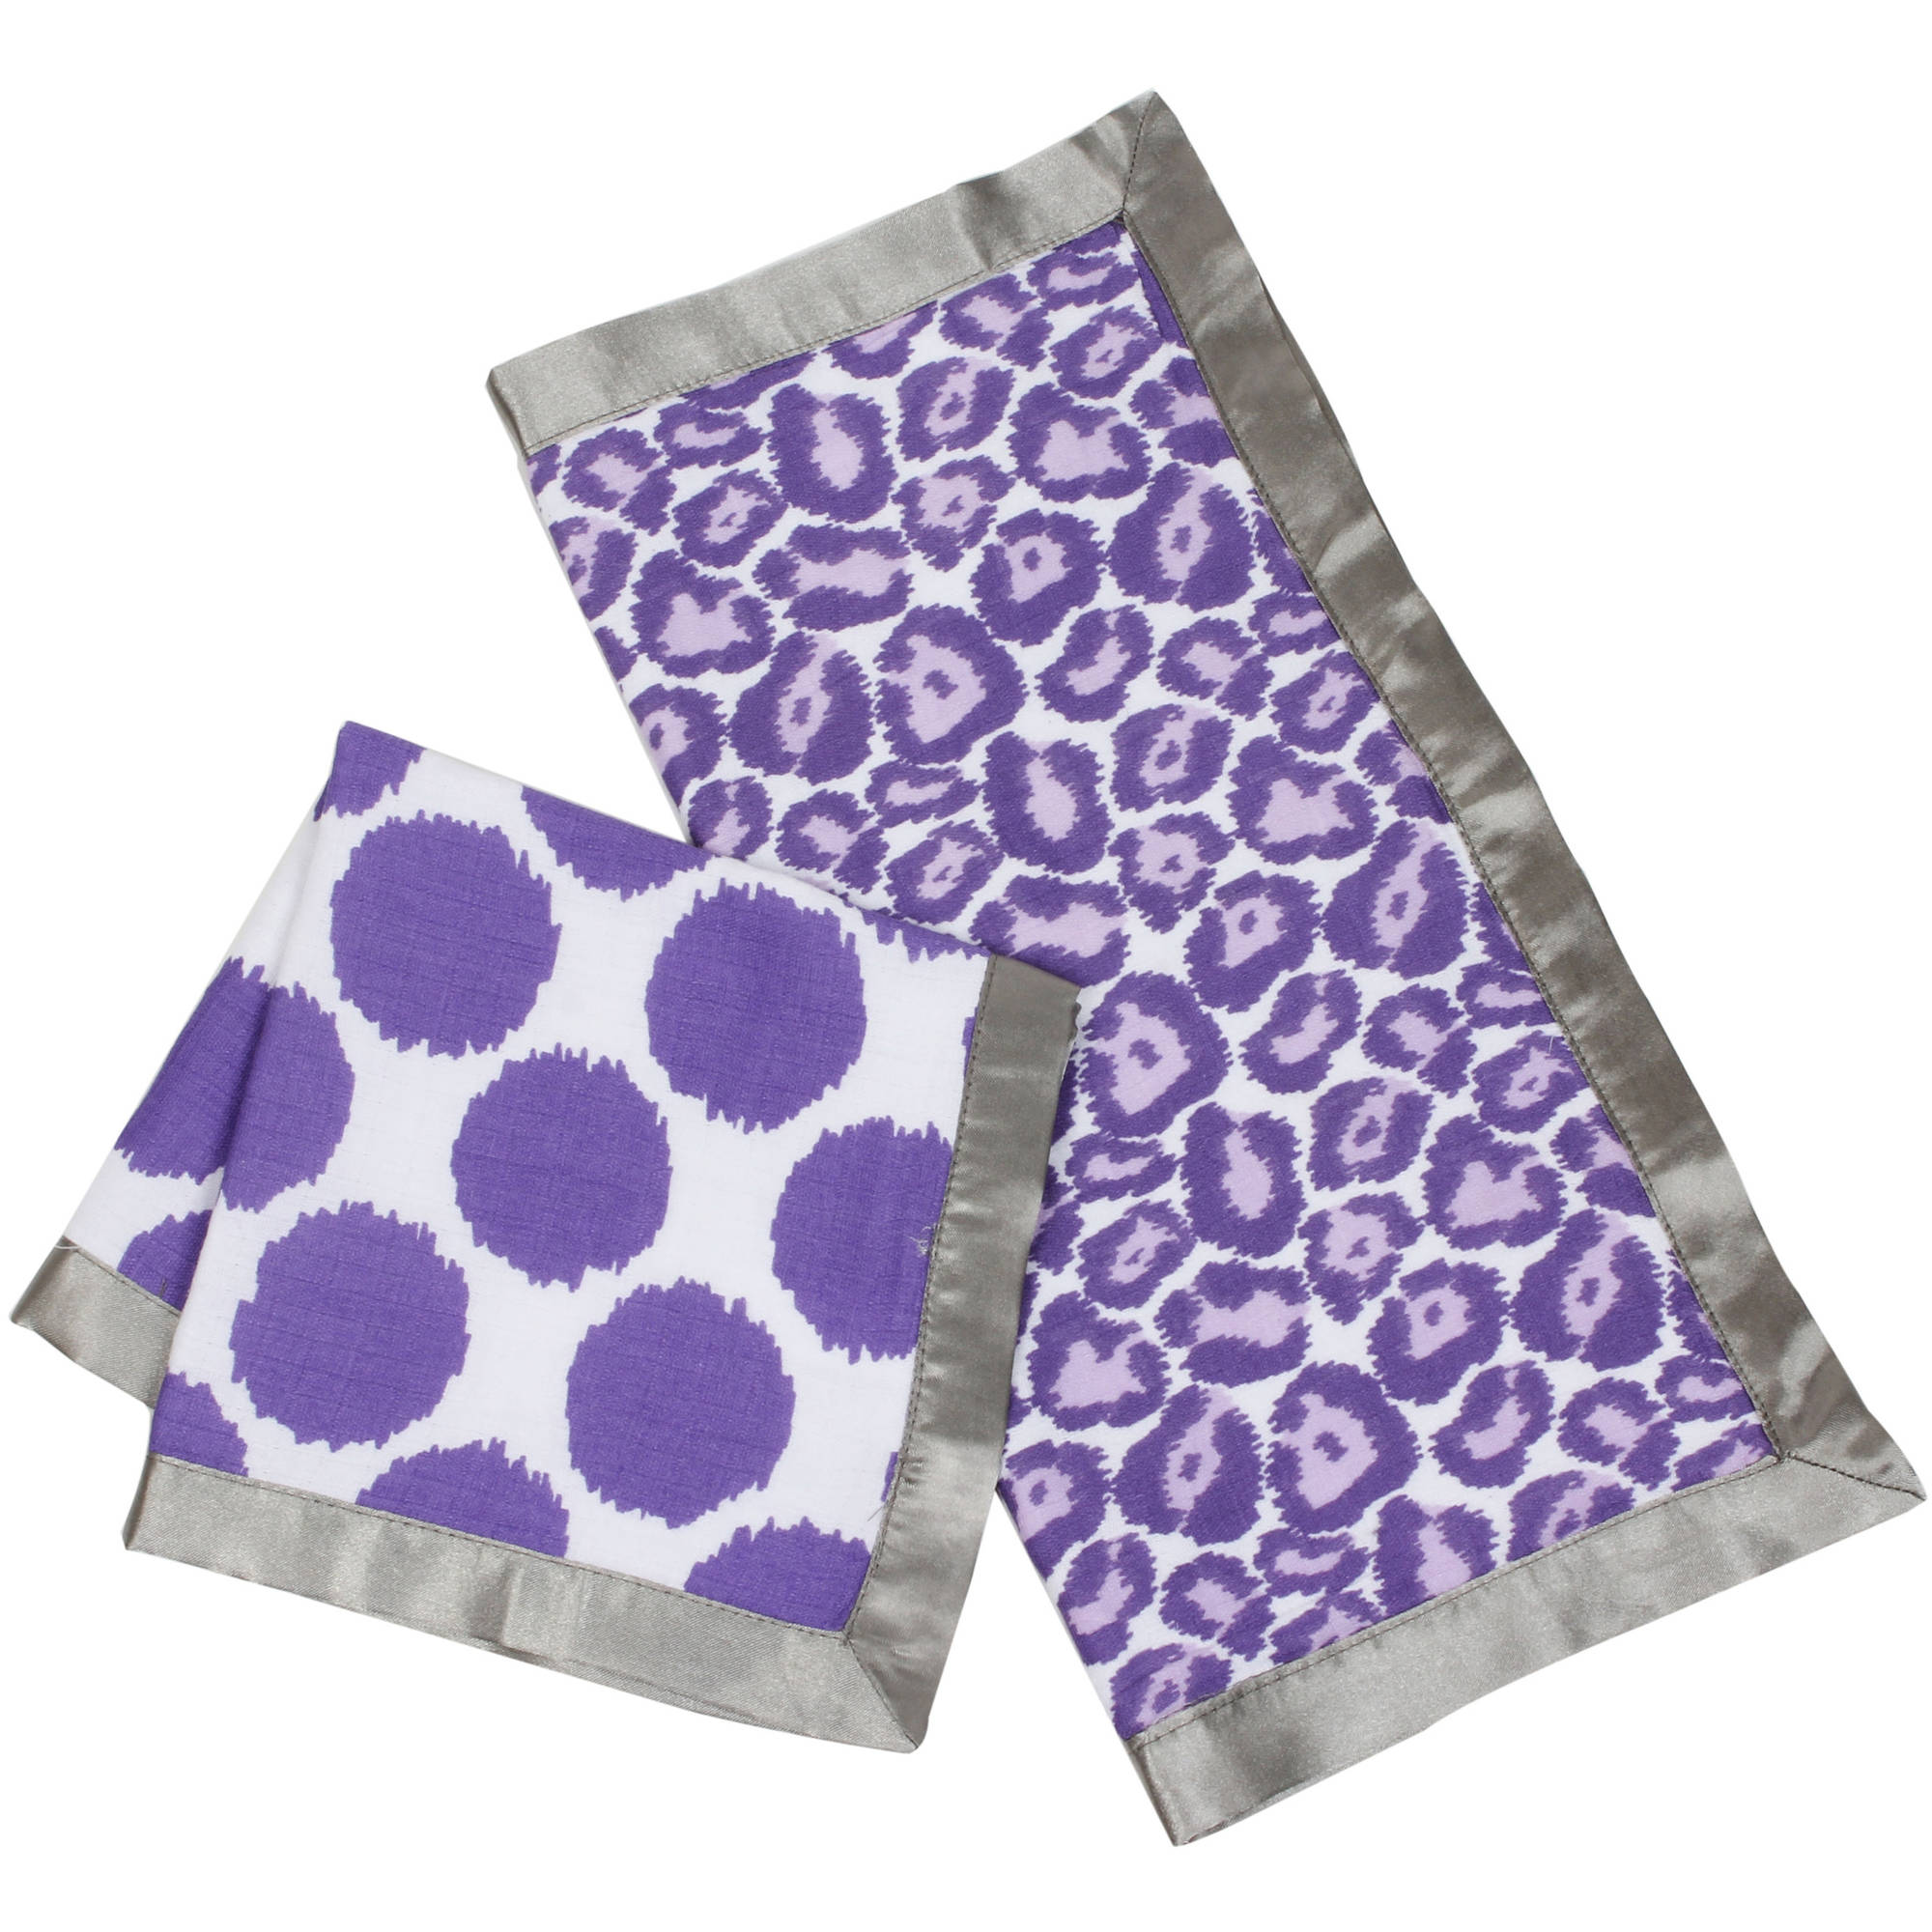 Bacati - Ikat Dots/Leopard Muslin 2-Piece Security Blankets with Sateen Trim, Lilac/Gray